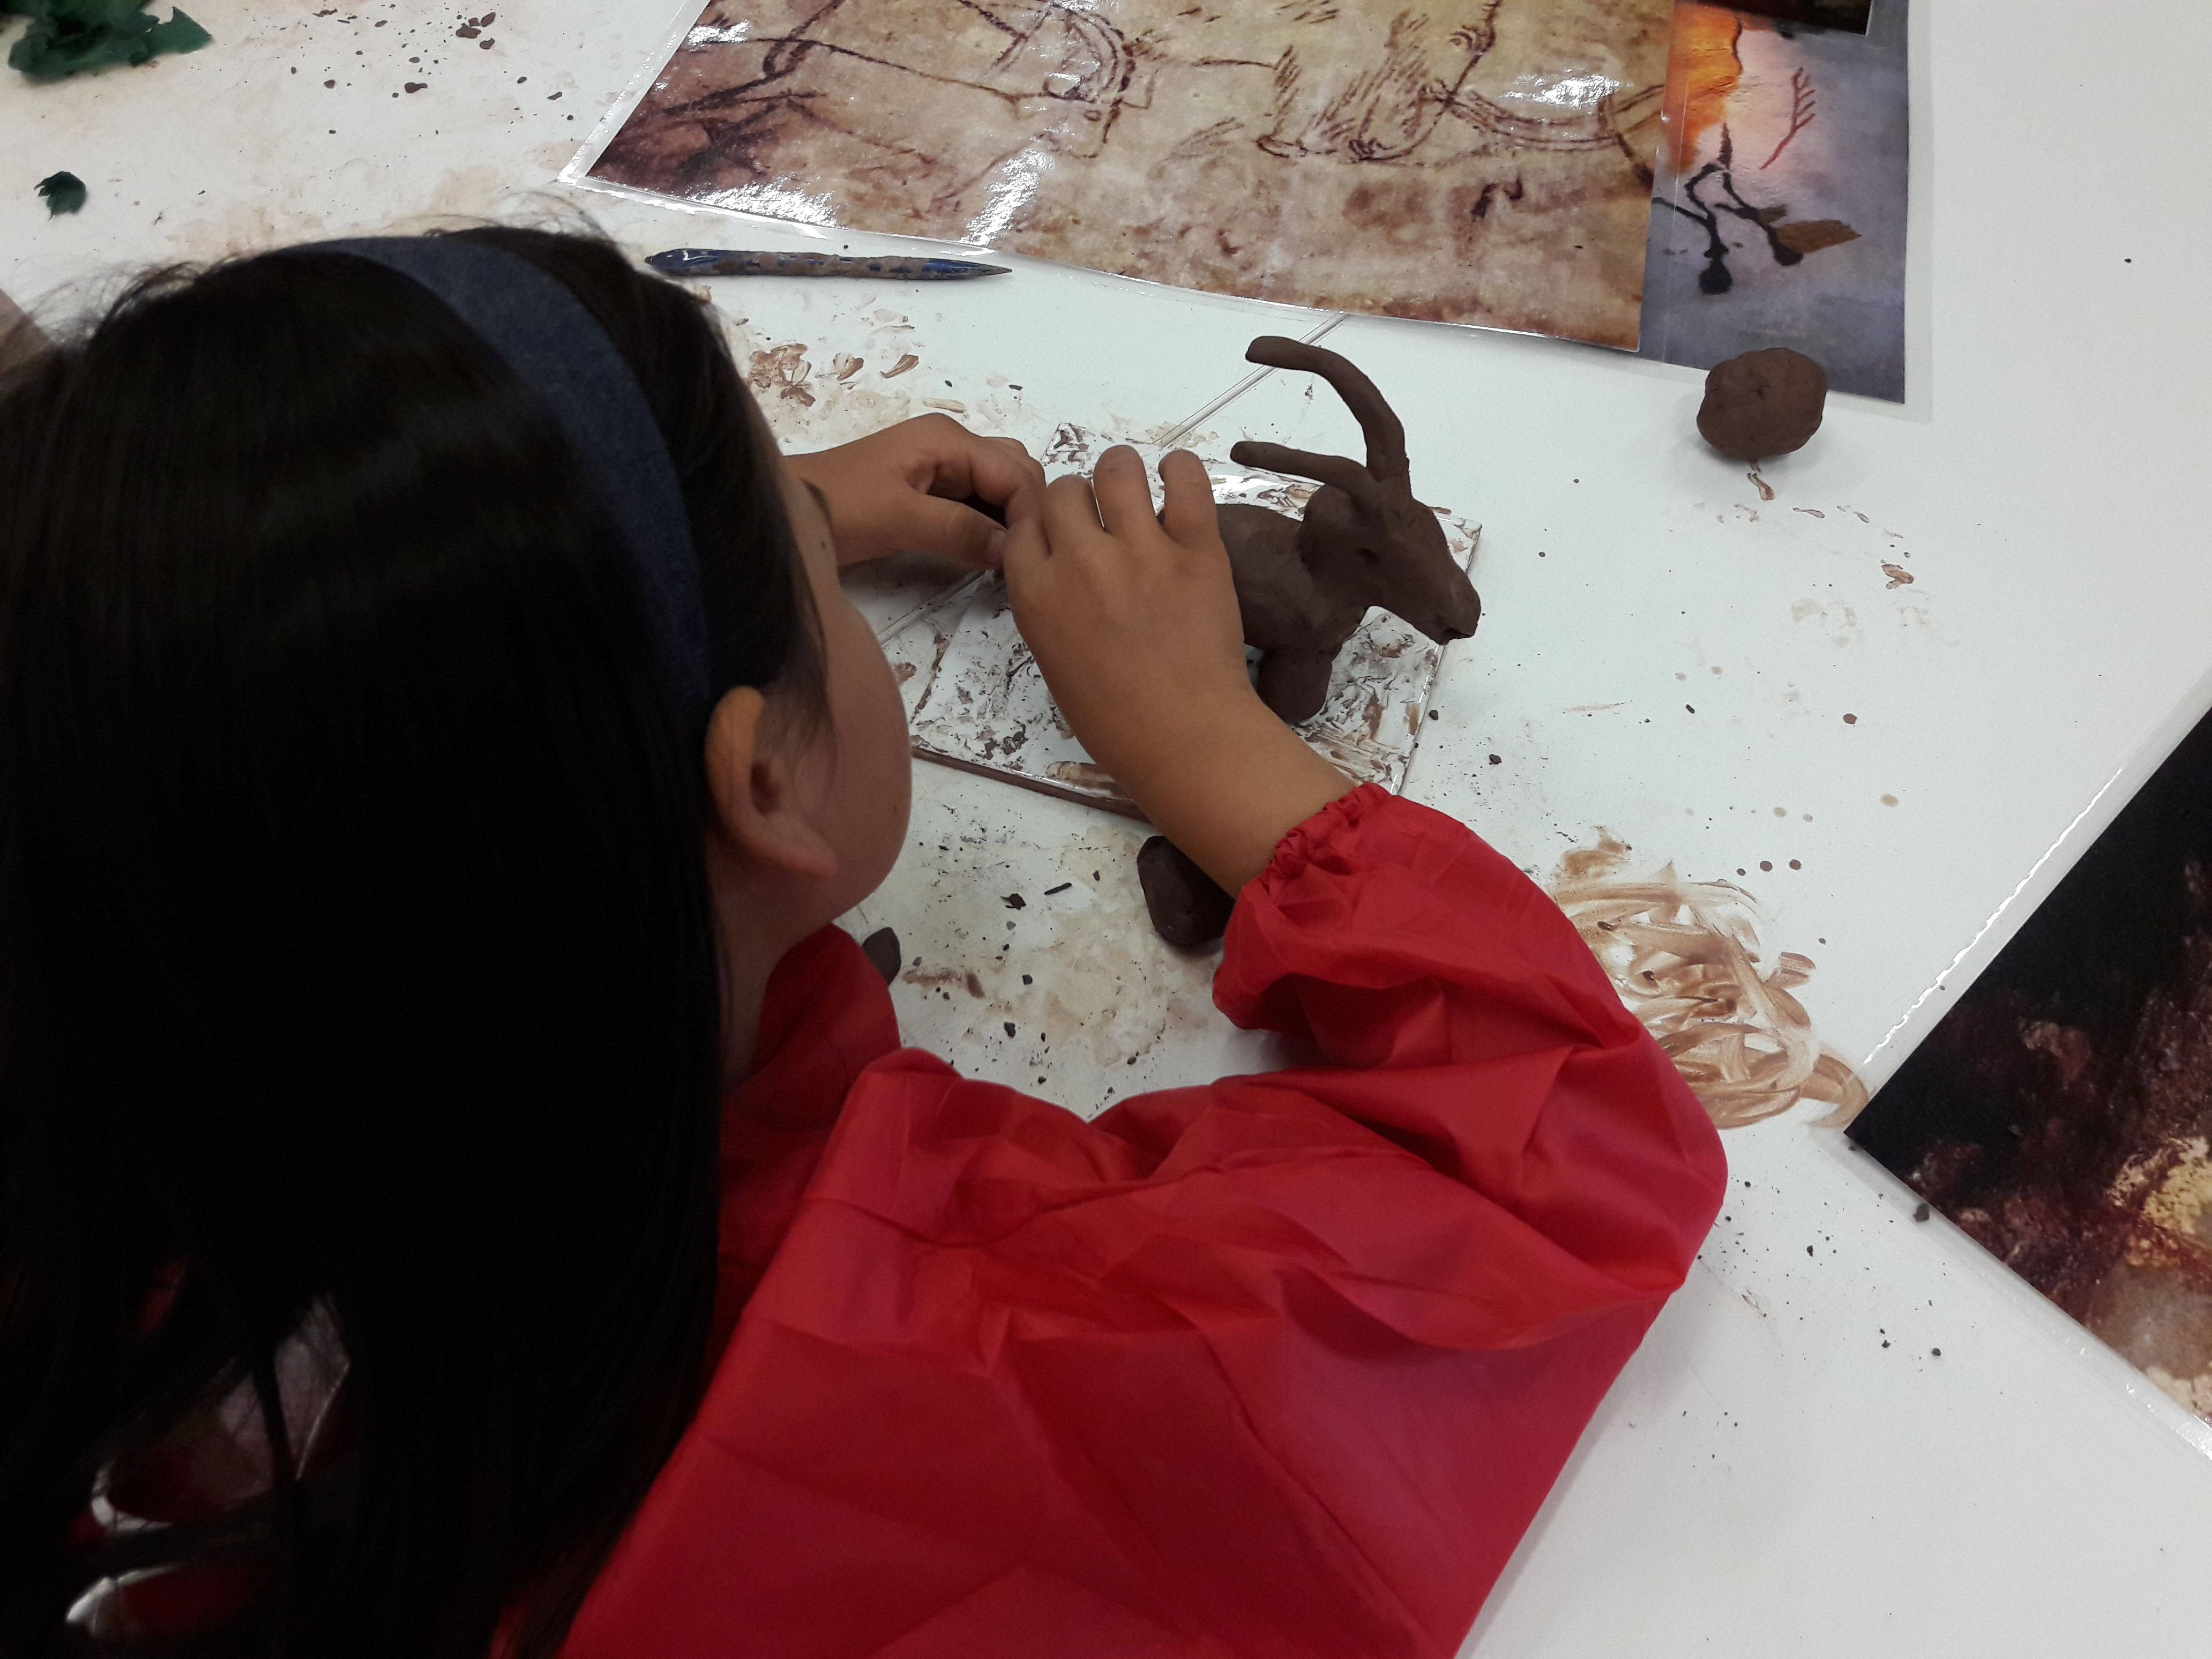 Child making a creature out of clay